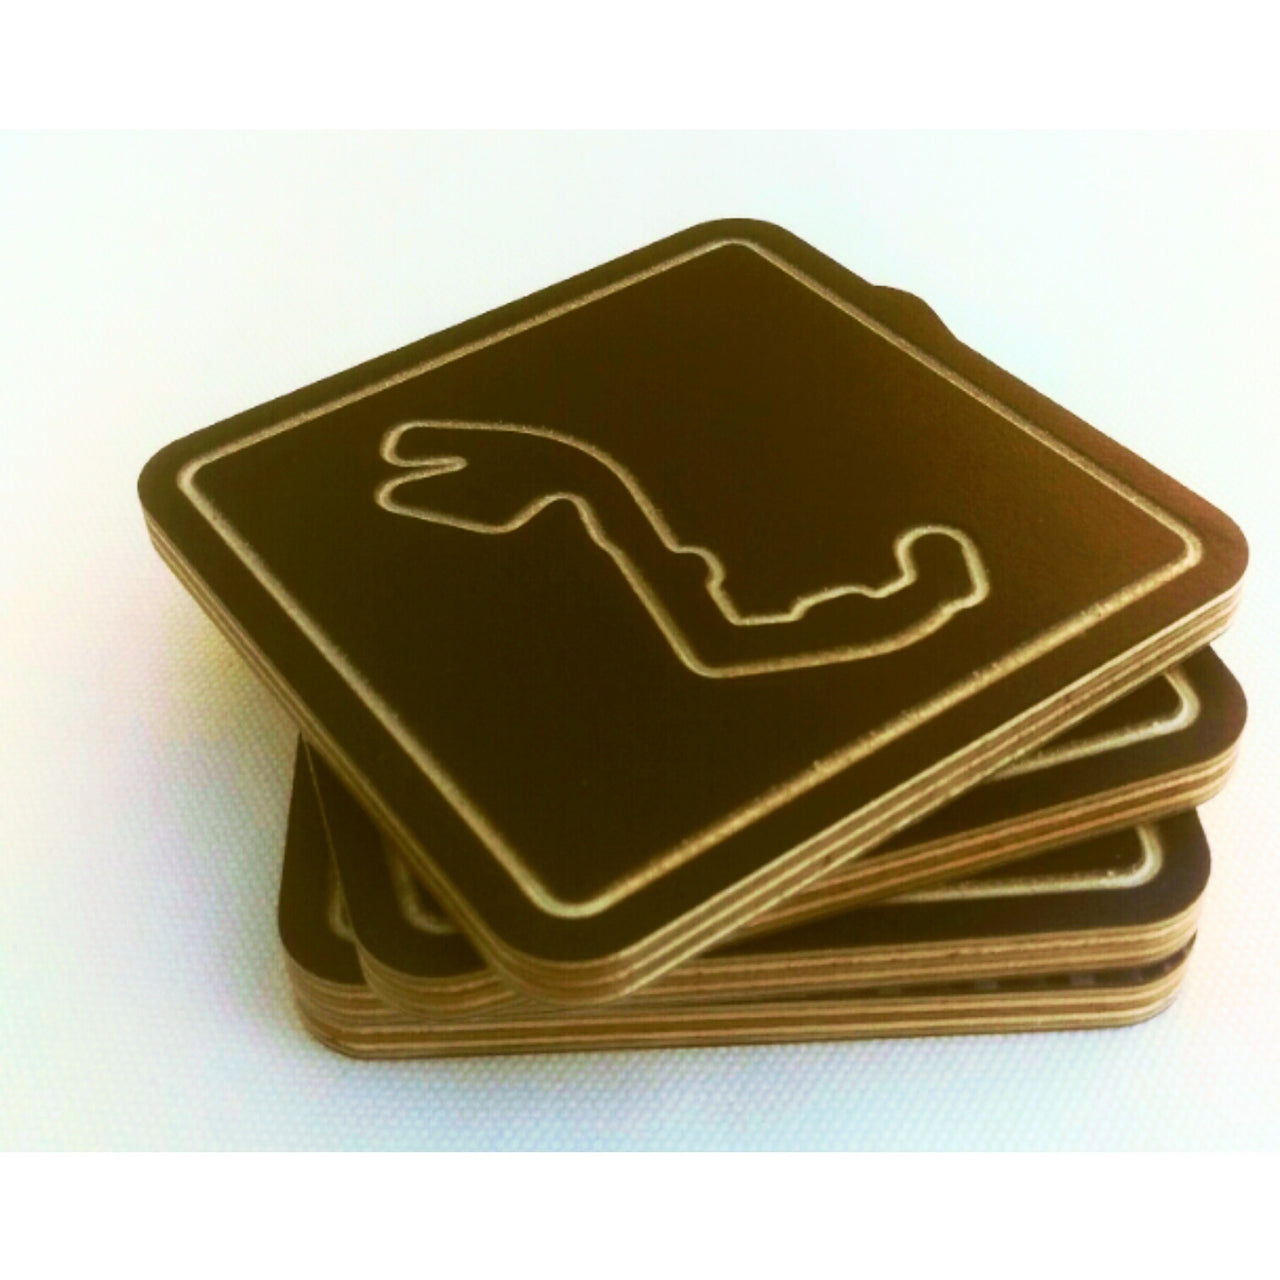 Coaster Set of 8 - Black